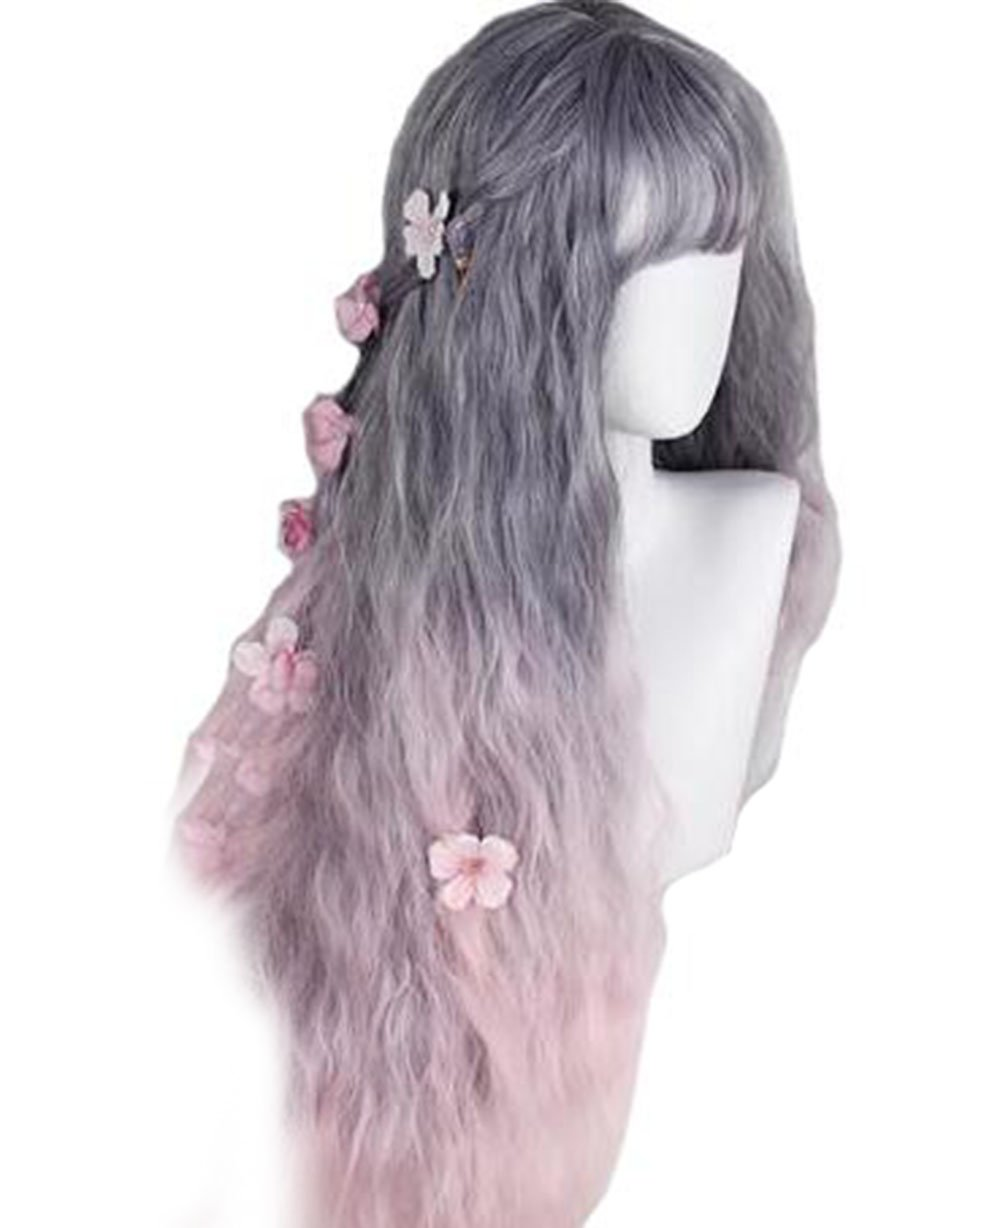 Women's Long Wavy Curly Wigs Grey Pink Ombre 2 Tone Lolita Wig Heat Resistant Synthetic Wigs for Costume Party Cosplay